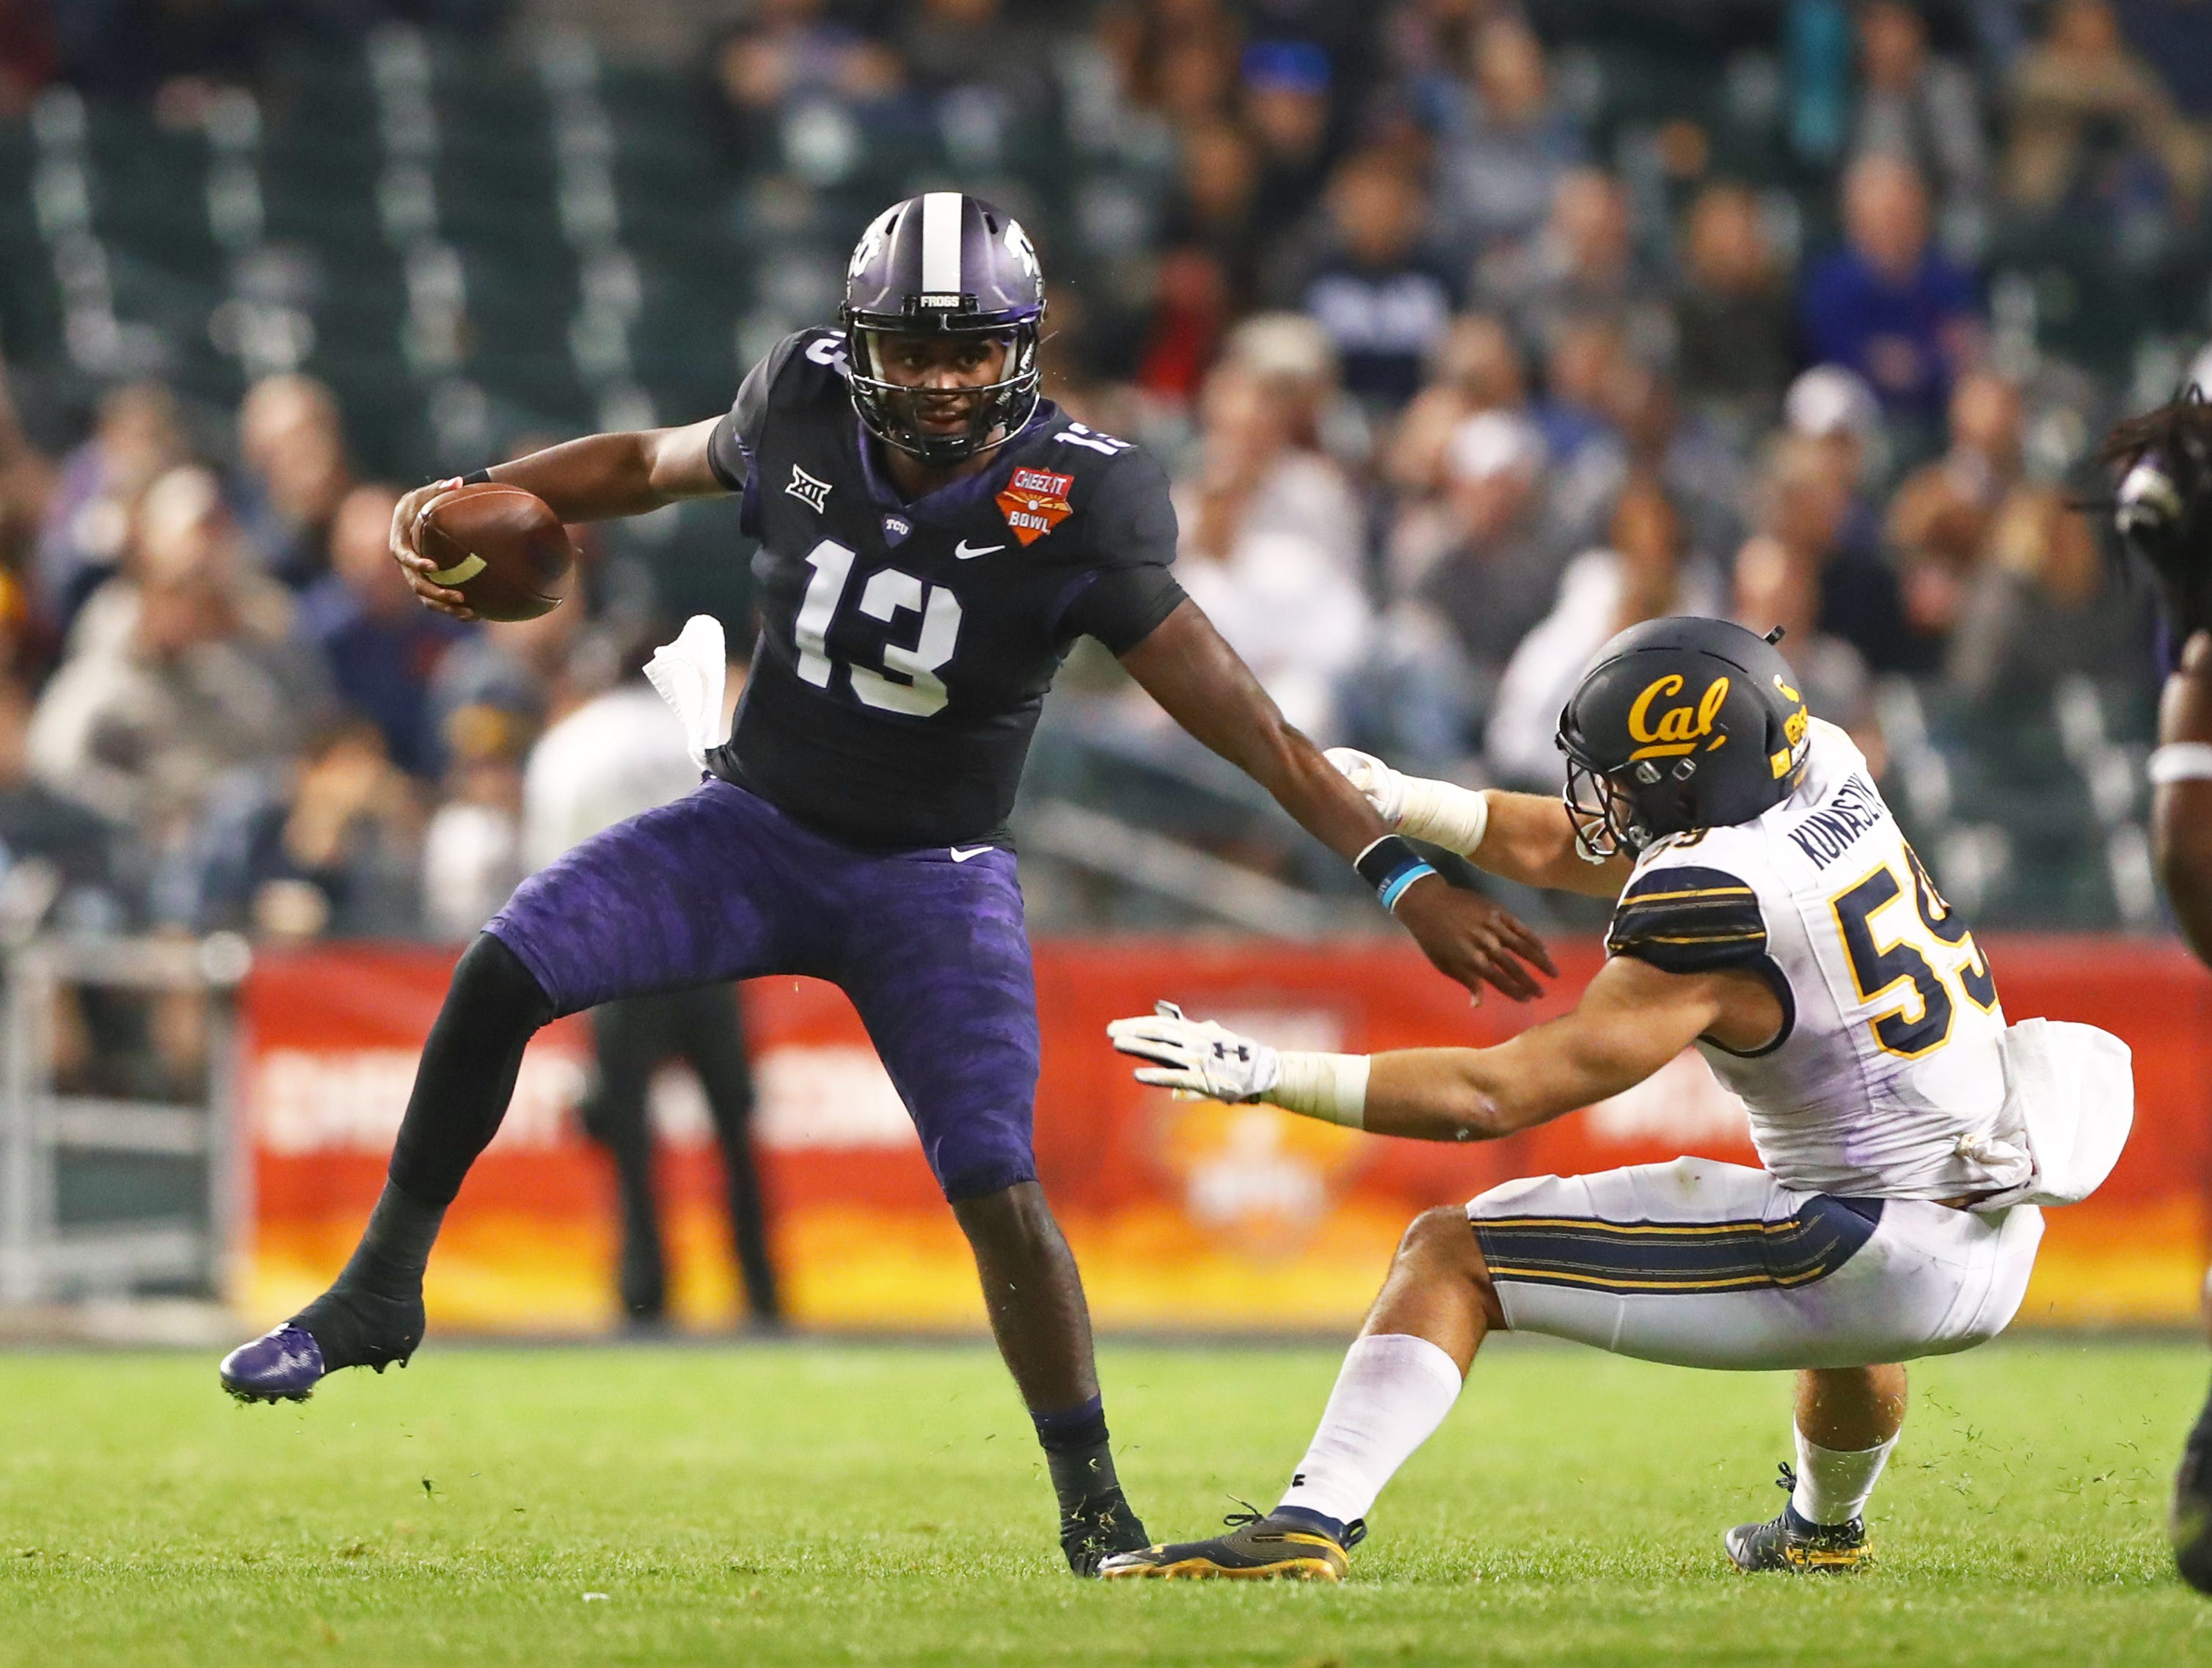 Dec 26, 2018; Phoenix, AZ, USA; Texas Christian Horned Frogs quarterback Justin Rogers (13) against California Golden Bears linebacker Jordan Kunaszyk (59) in the 2018 Cheez-It Bowl at Chase Field.